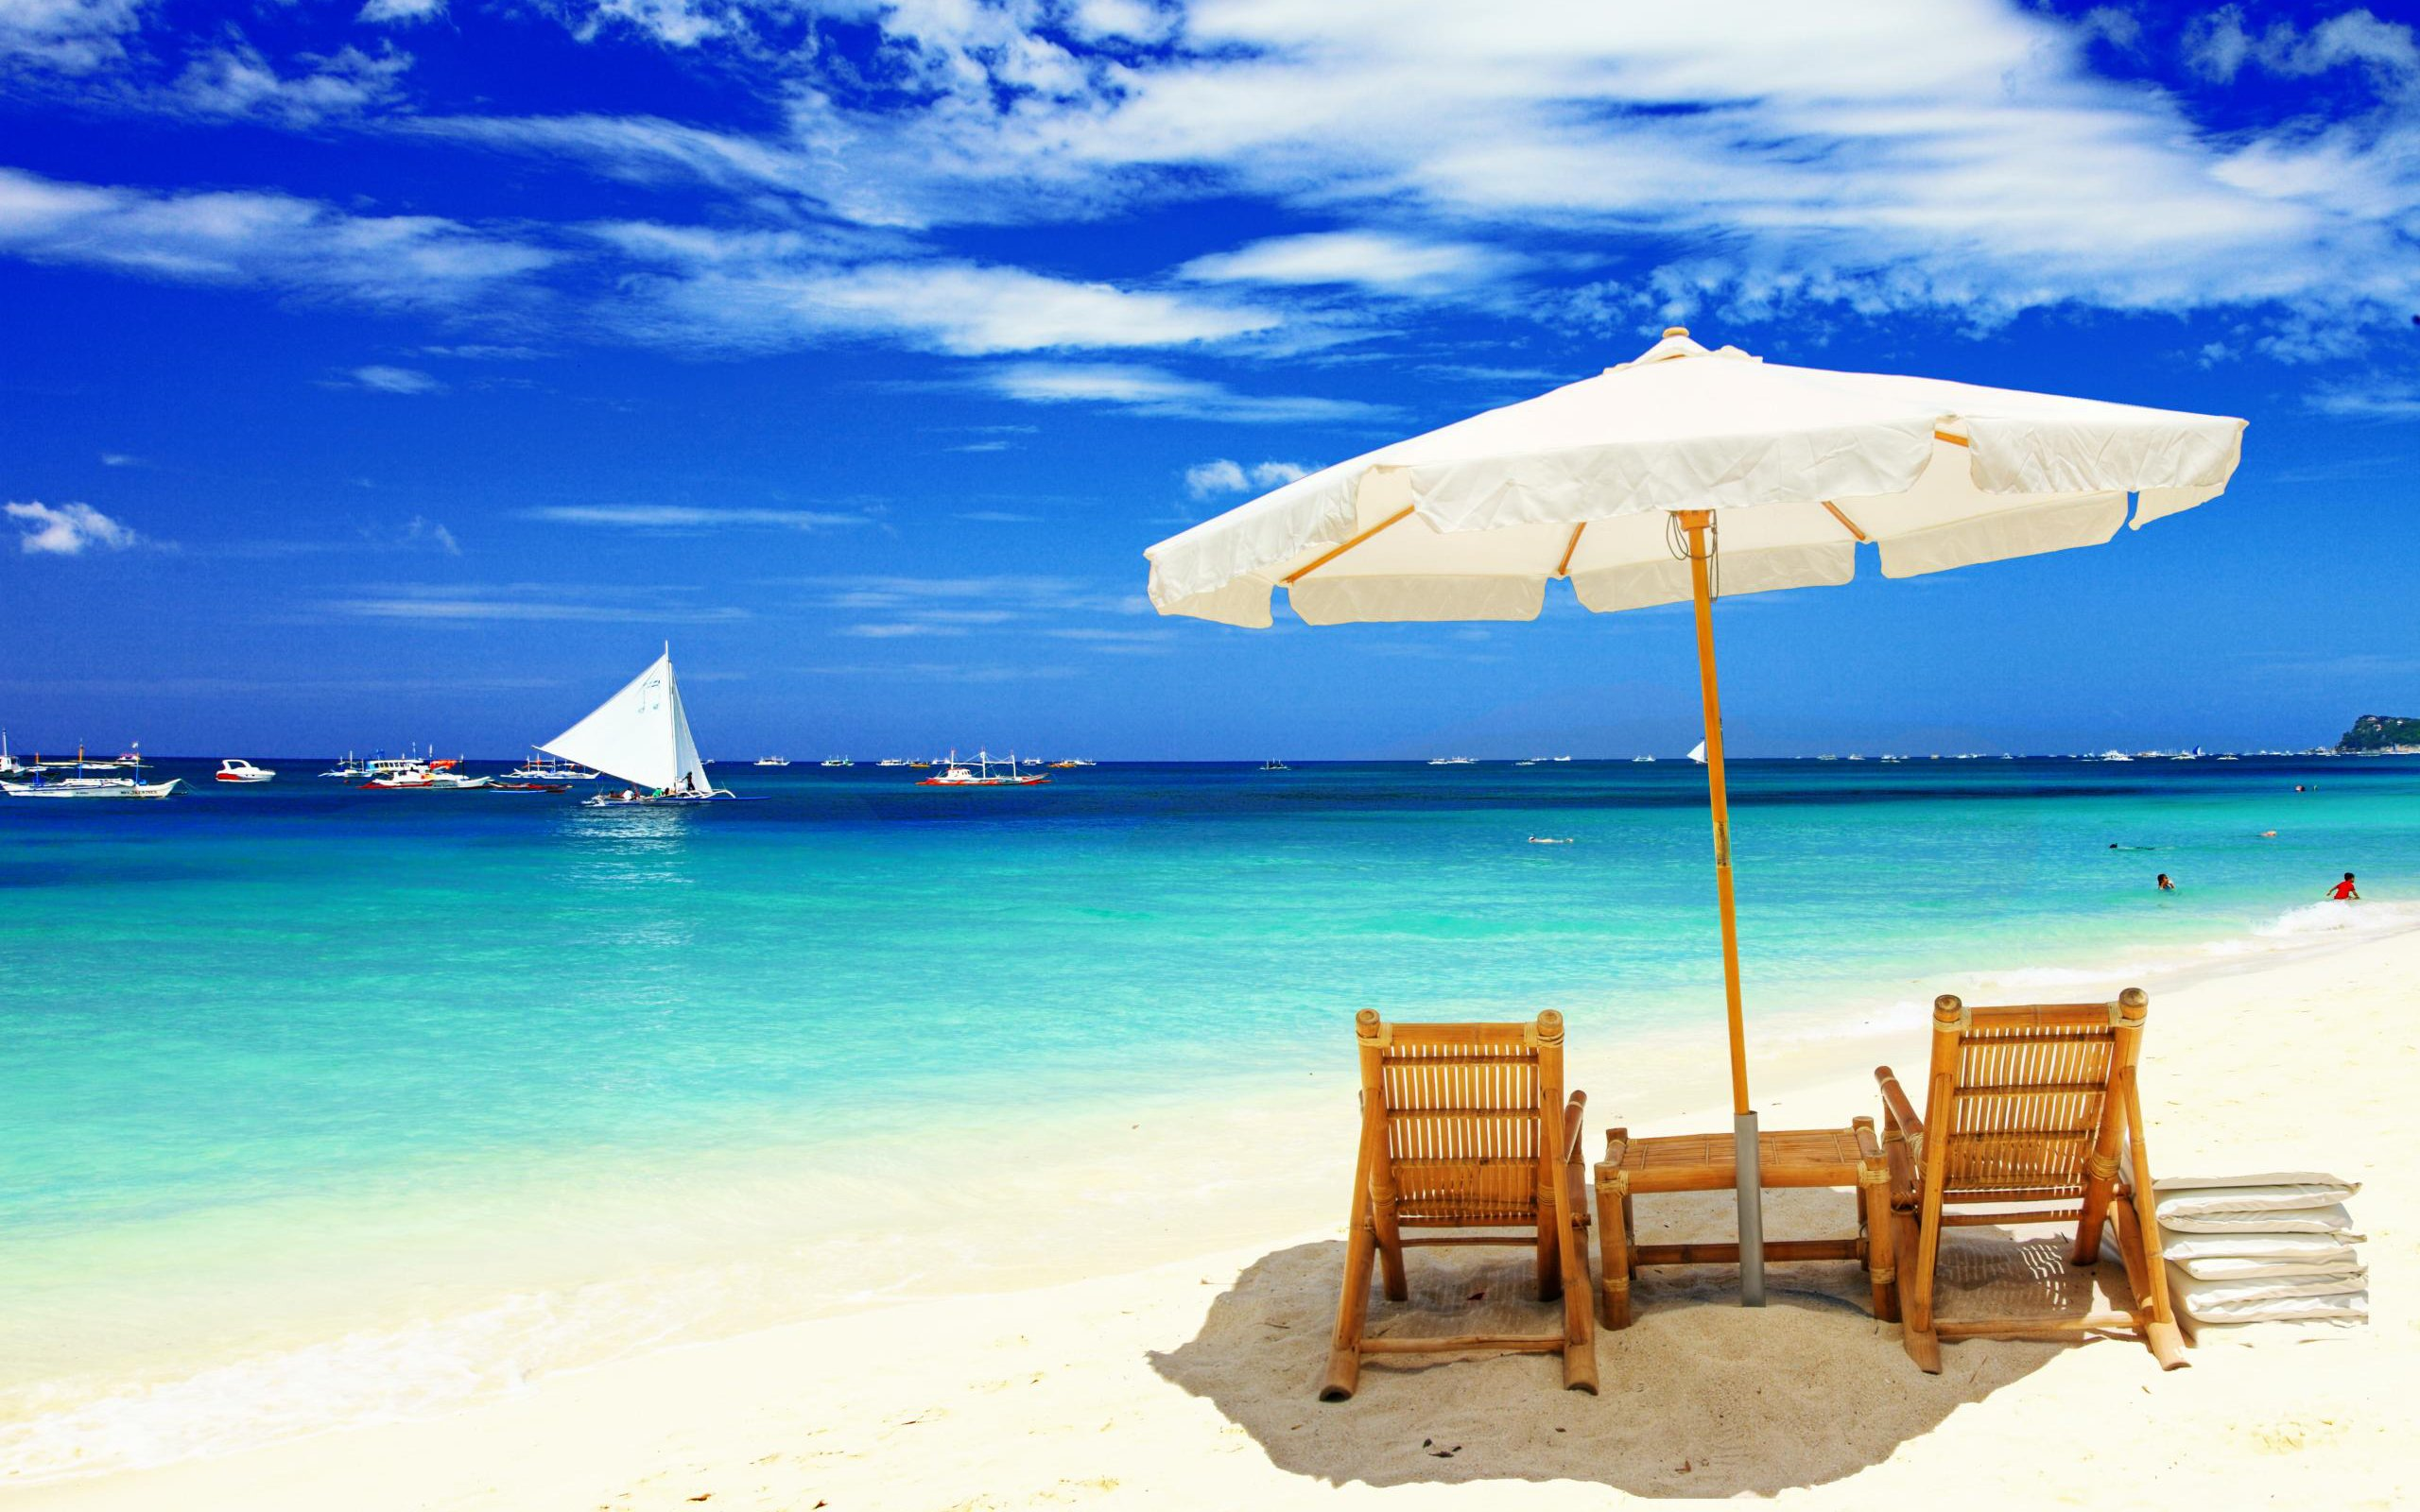 Casual Beach Wallpaper High Resolution Wallpaper with 2560x1600 2560x1600